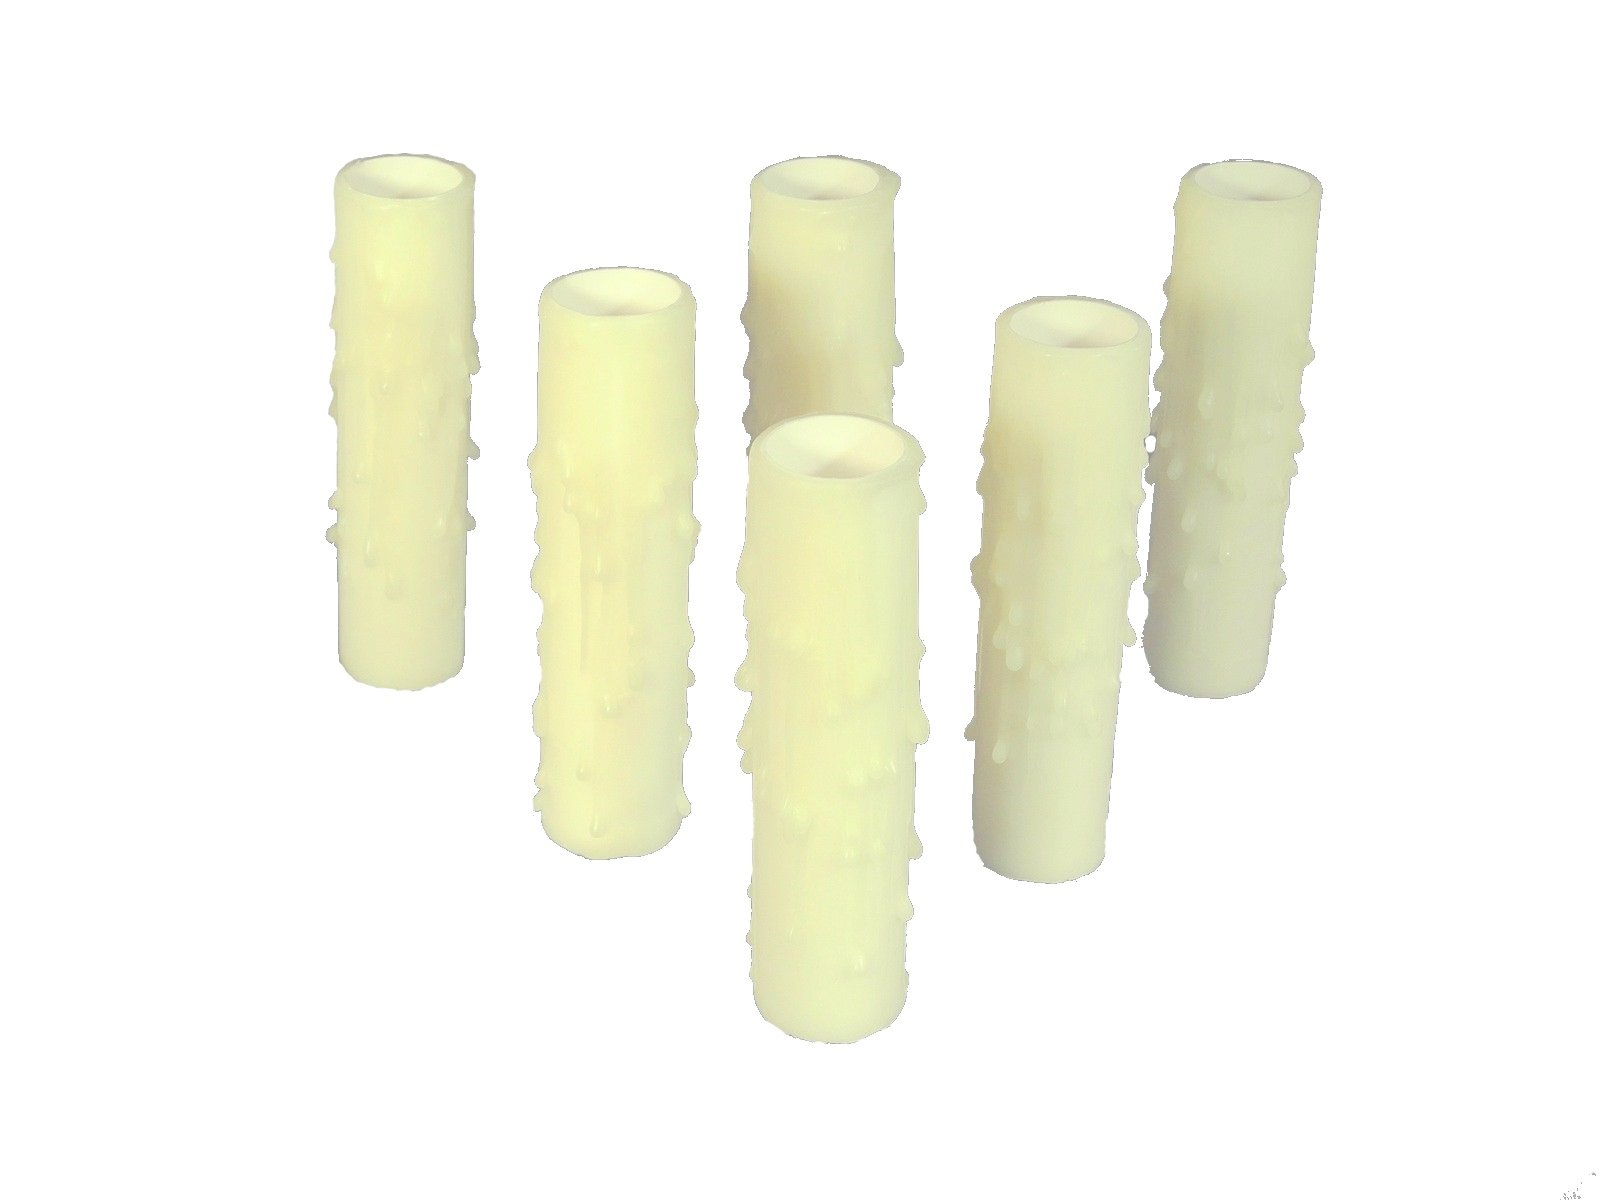 Set of 6 pc. 3'' Tall Bone Candelabra Base 3/4'' Inner Diameter Thin Base Beeswax Candle Covers, Socket Sleeves by Lighthouse Industries